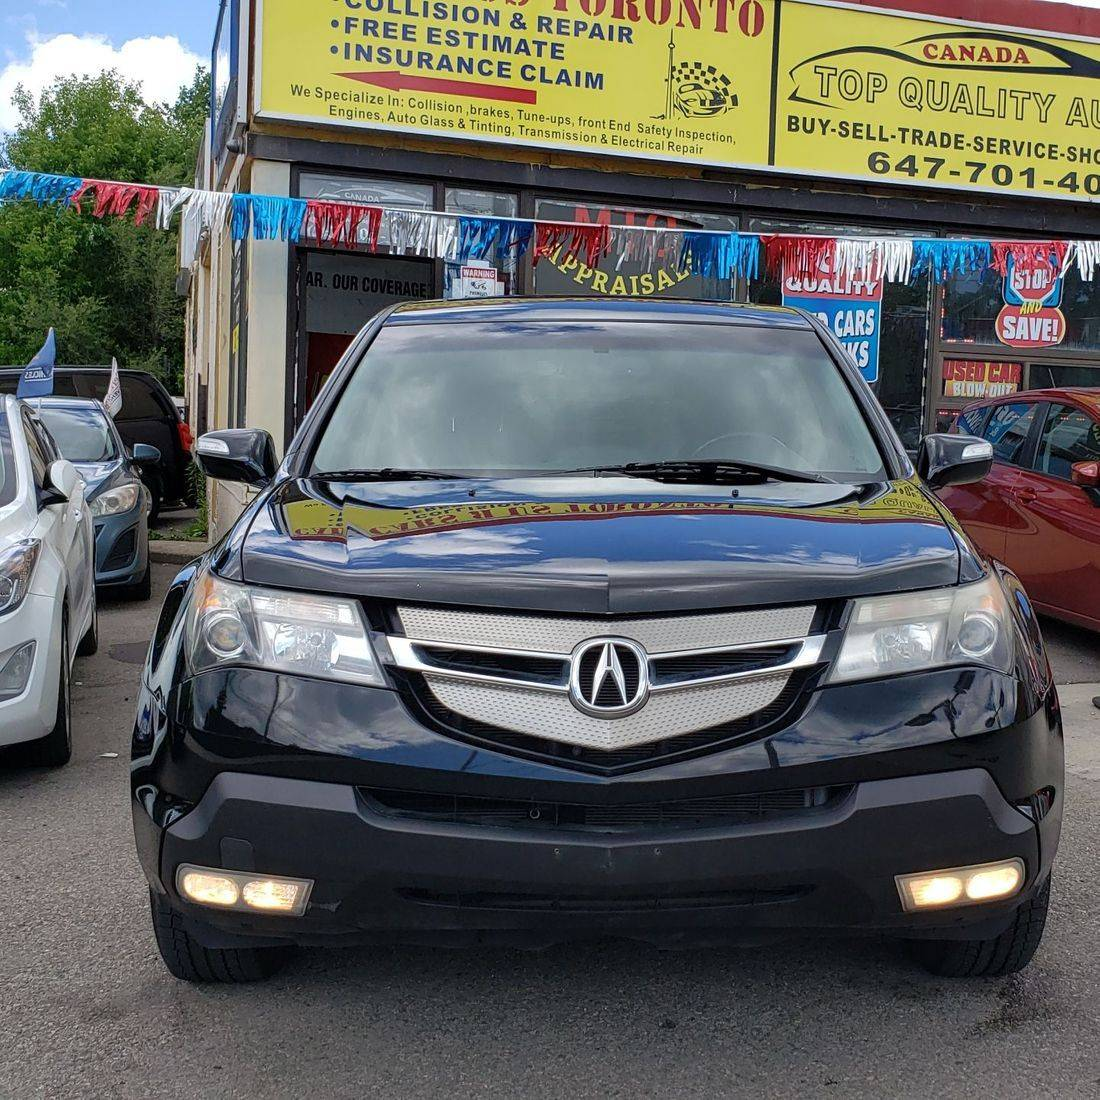 Low Mileage Pre-Owned Vehicles For Sale In Scarborough